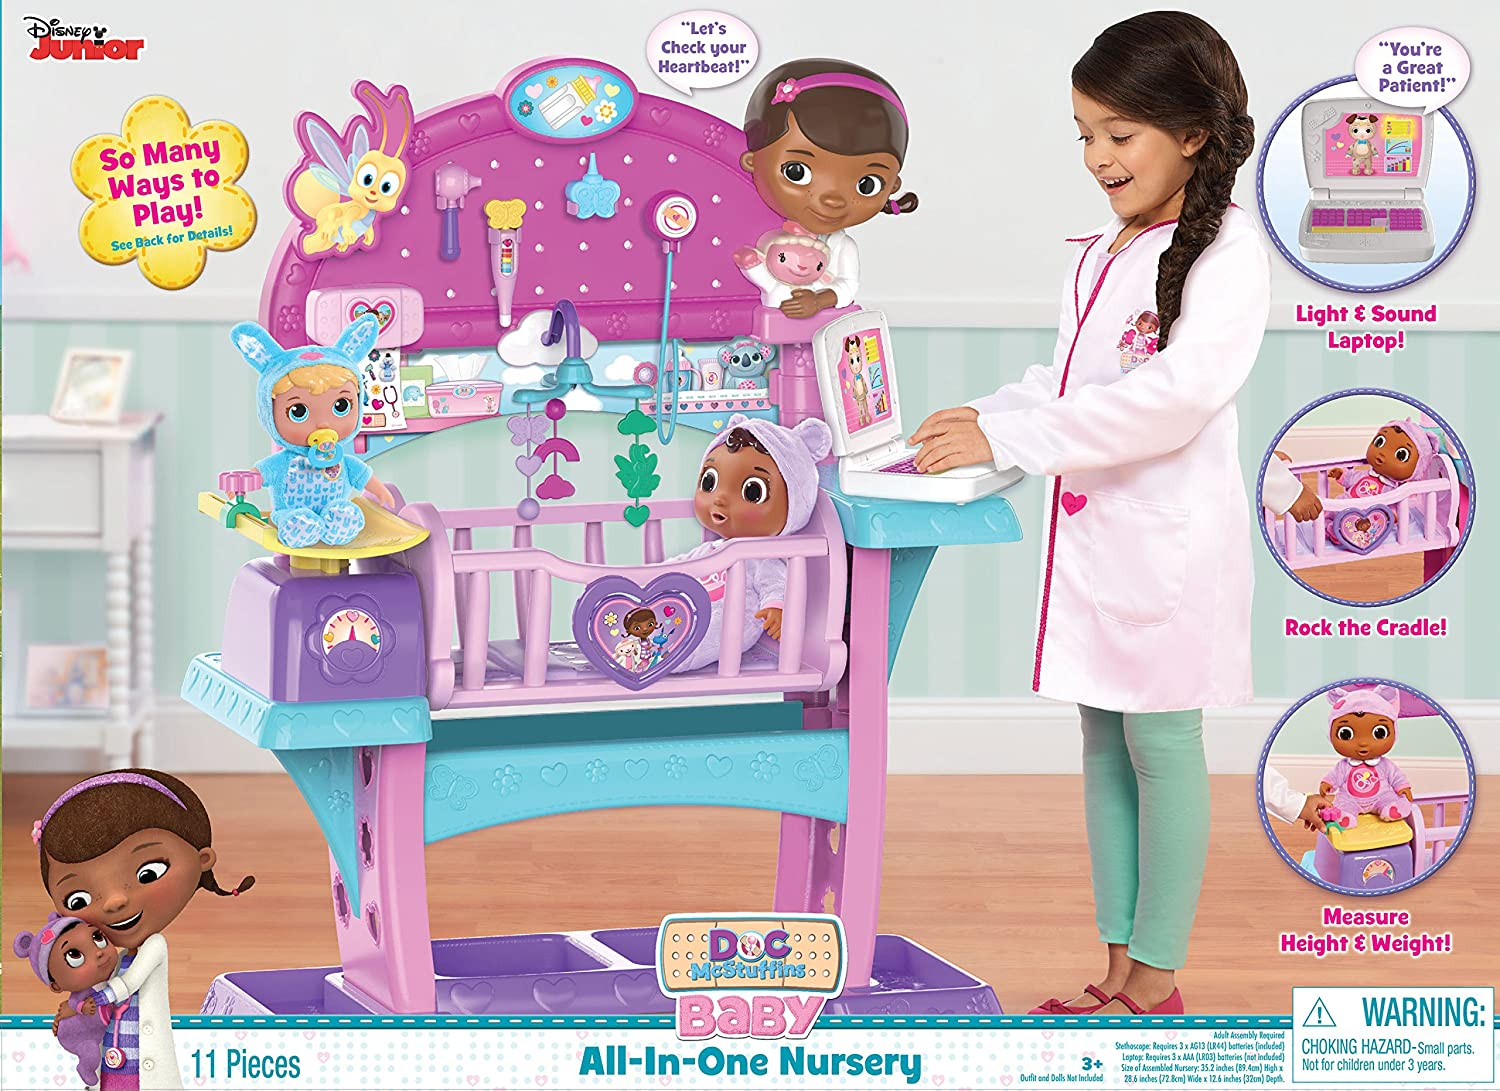 Disney Doc McStuffins All in One Baby Nursery Set Flat River Group us toys FLAHC 92245